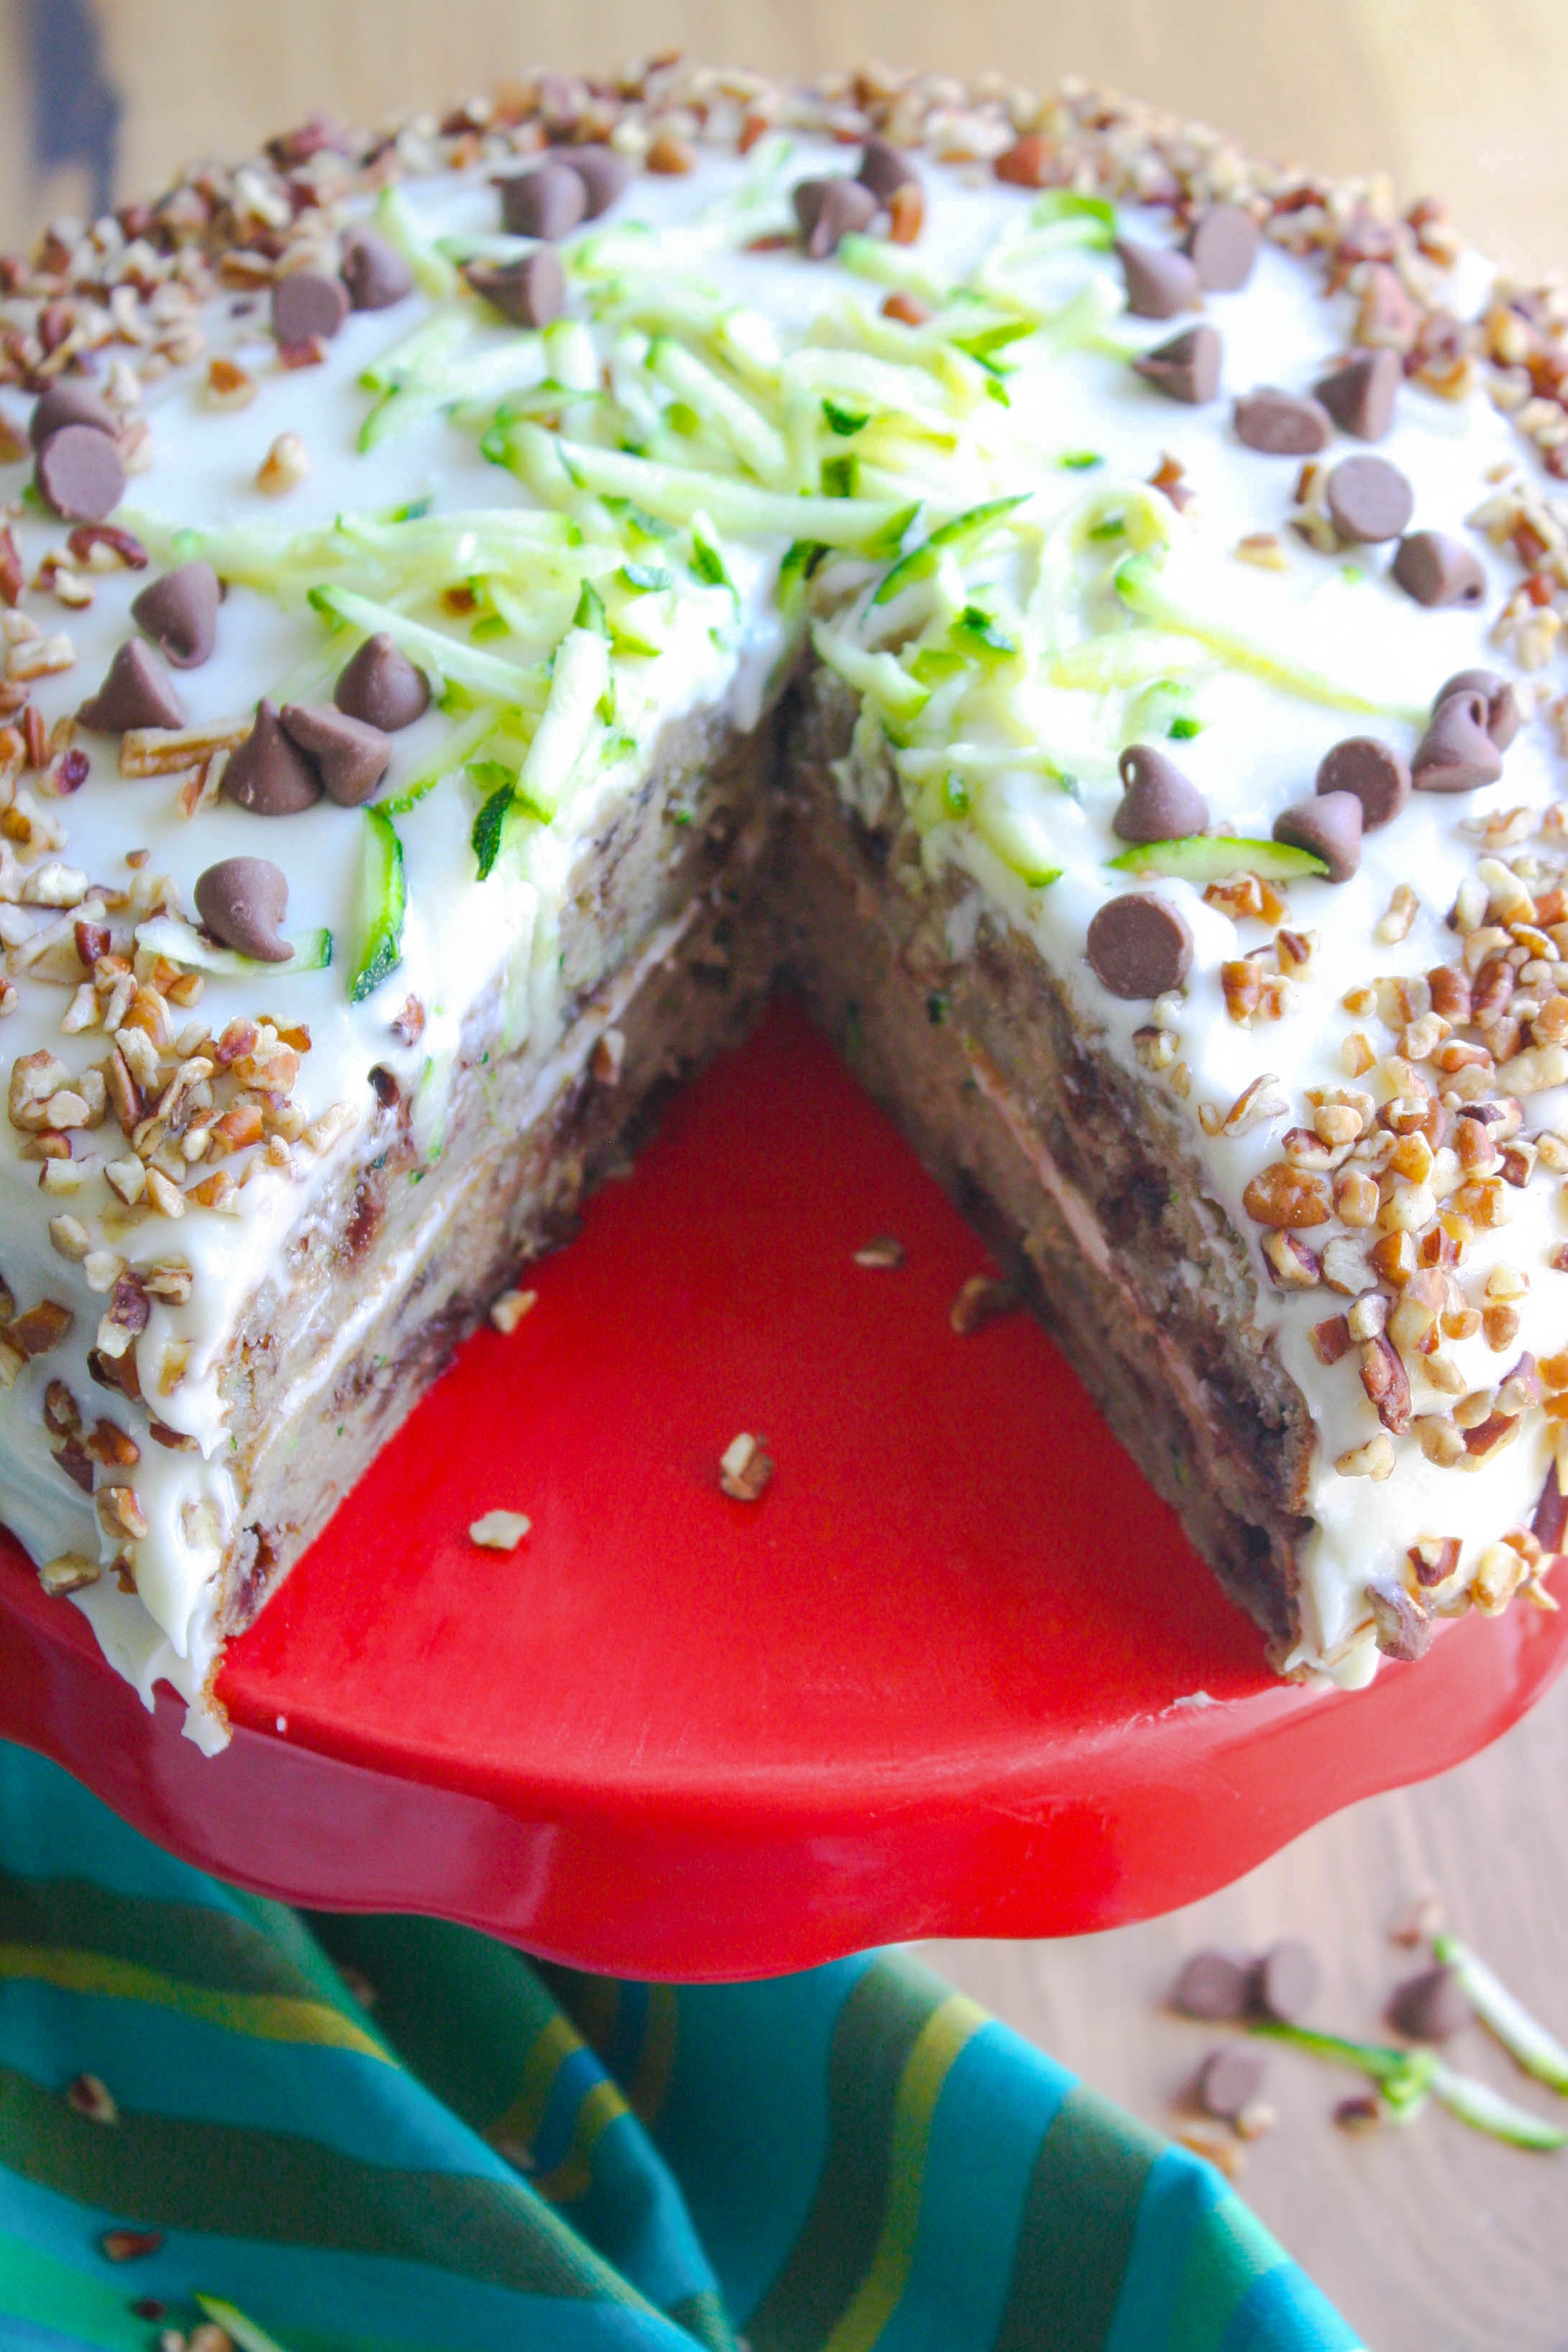 Zucchini-Banana Cake with Cream Cheese Frosting is a fun cake for the summer fun! Use up that zucchini on a wonderful dessert like this!